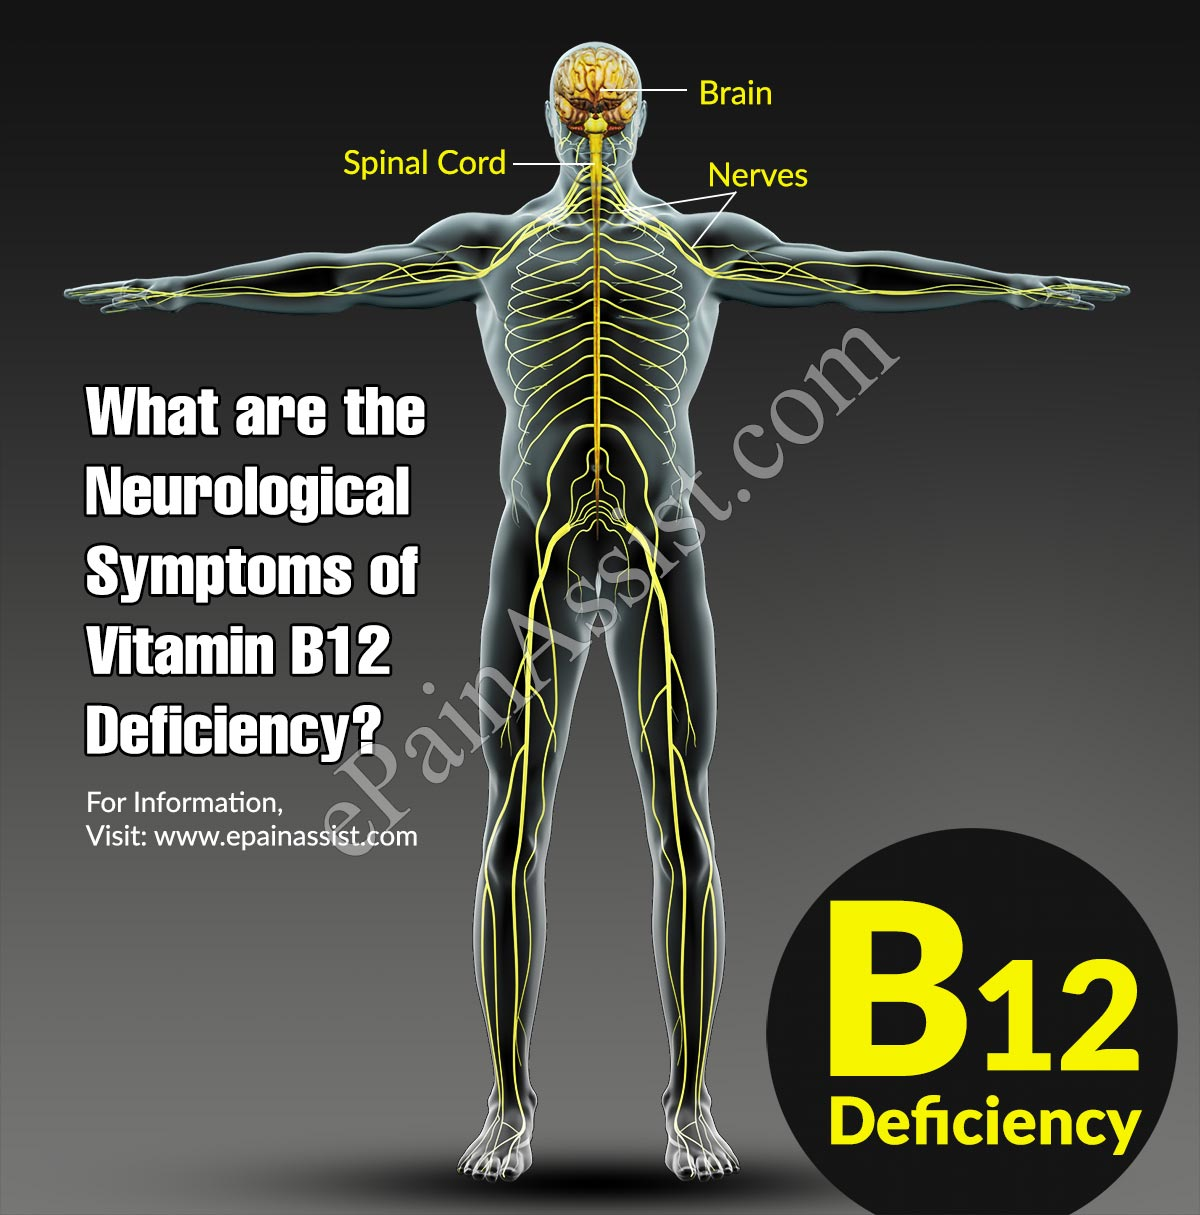 What are the Neurological Symptoms of Vitamin B12 Deficiency?